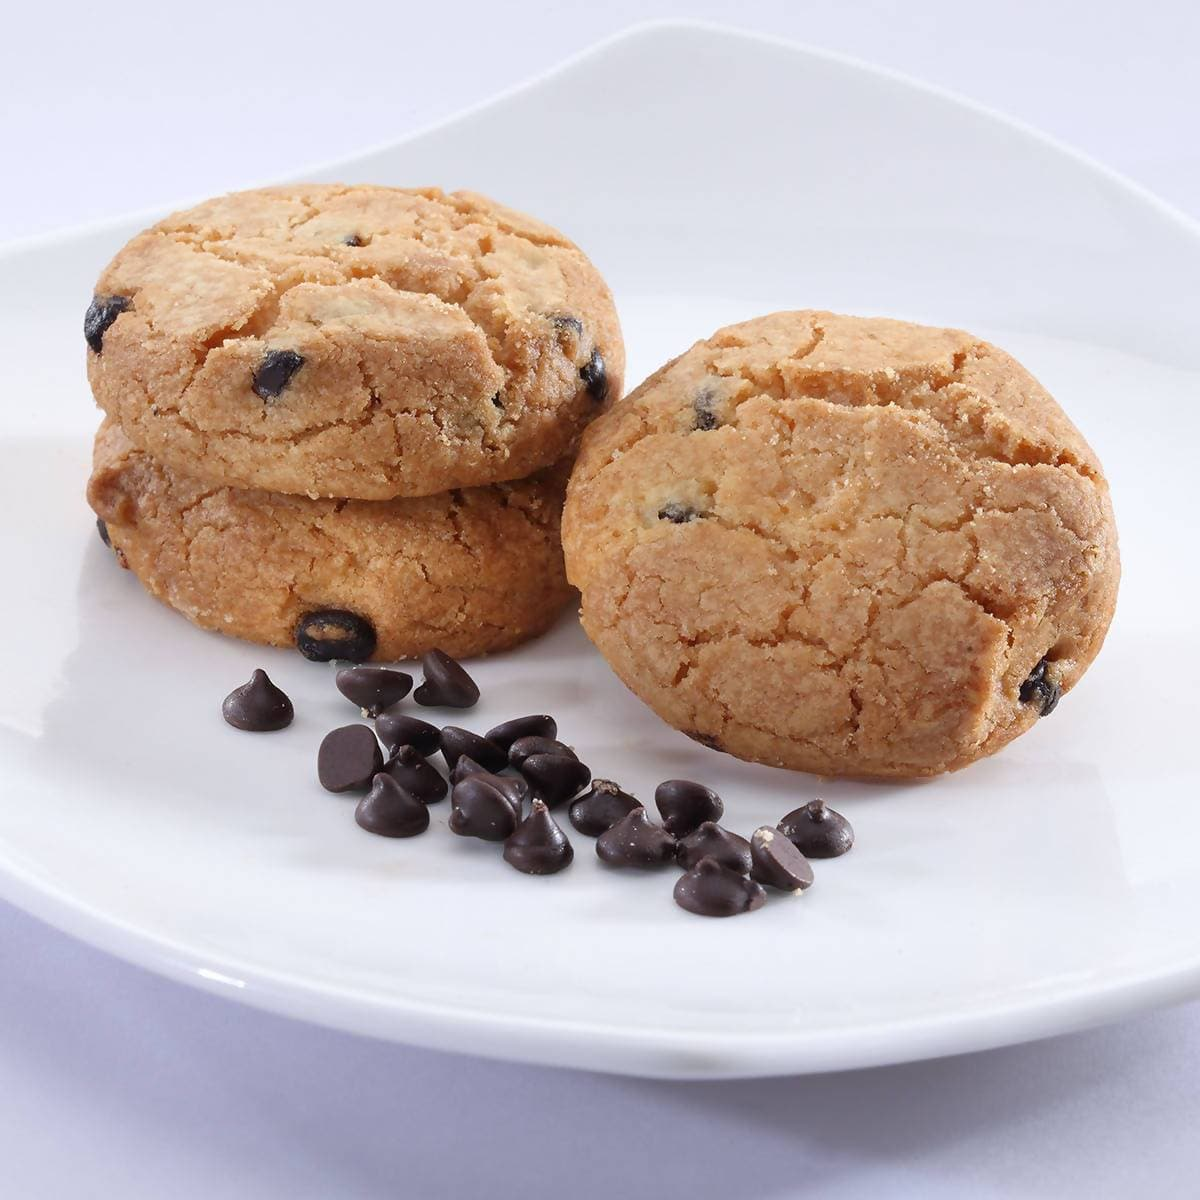 Cafe Niloufer Chocochip Osmania Biscuits